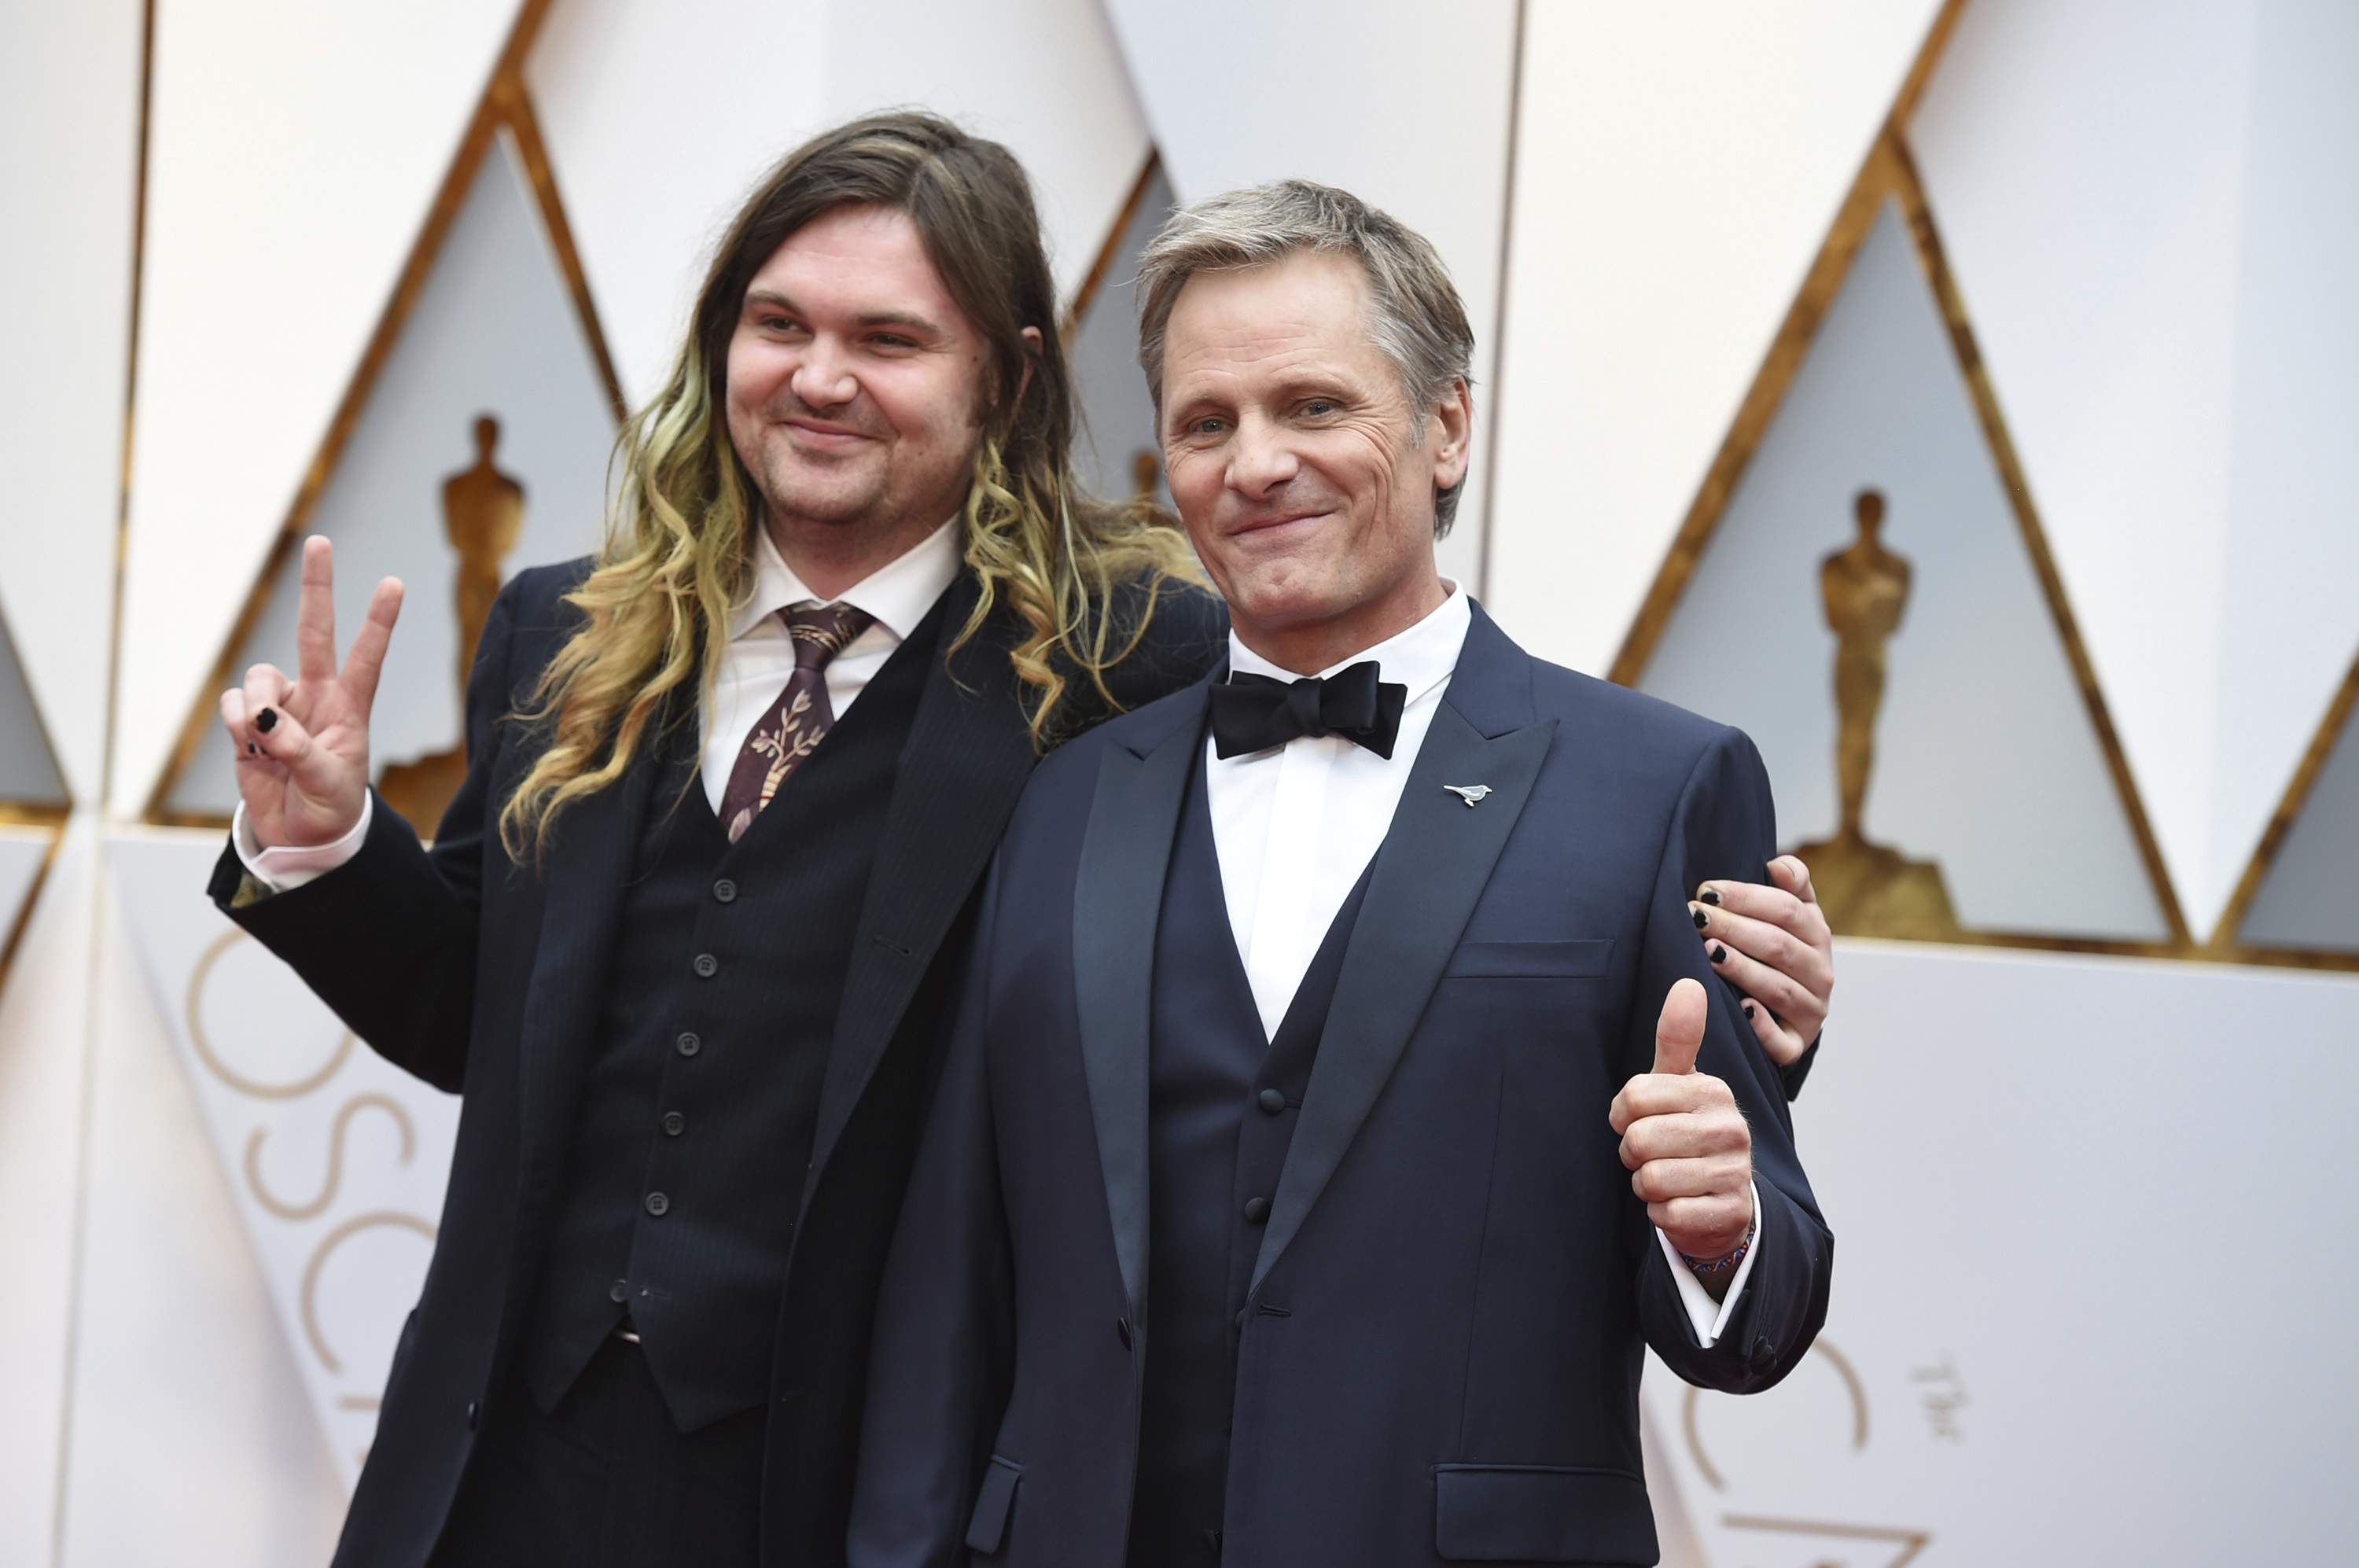 Henry Mortensen, left, and Viggo Mortensen arrive at the Oscars on Sunday, Feb. 26, 2017, at the Dolby Theatre in Los Angeles. THE ASSOCIATED PRESS